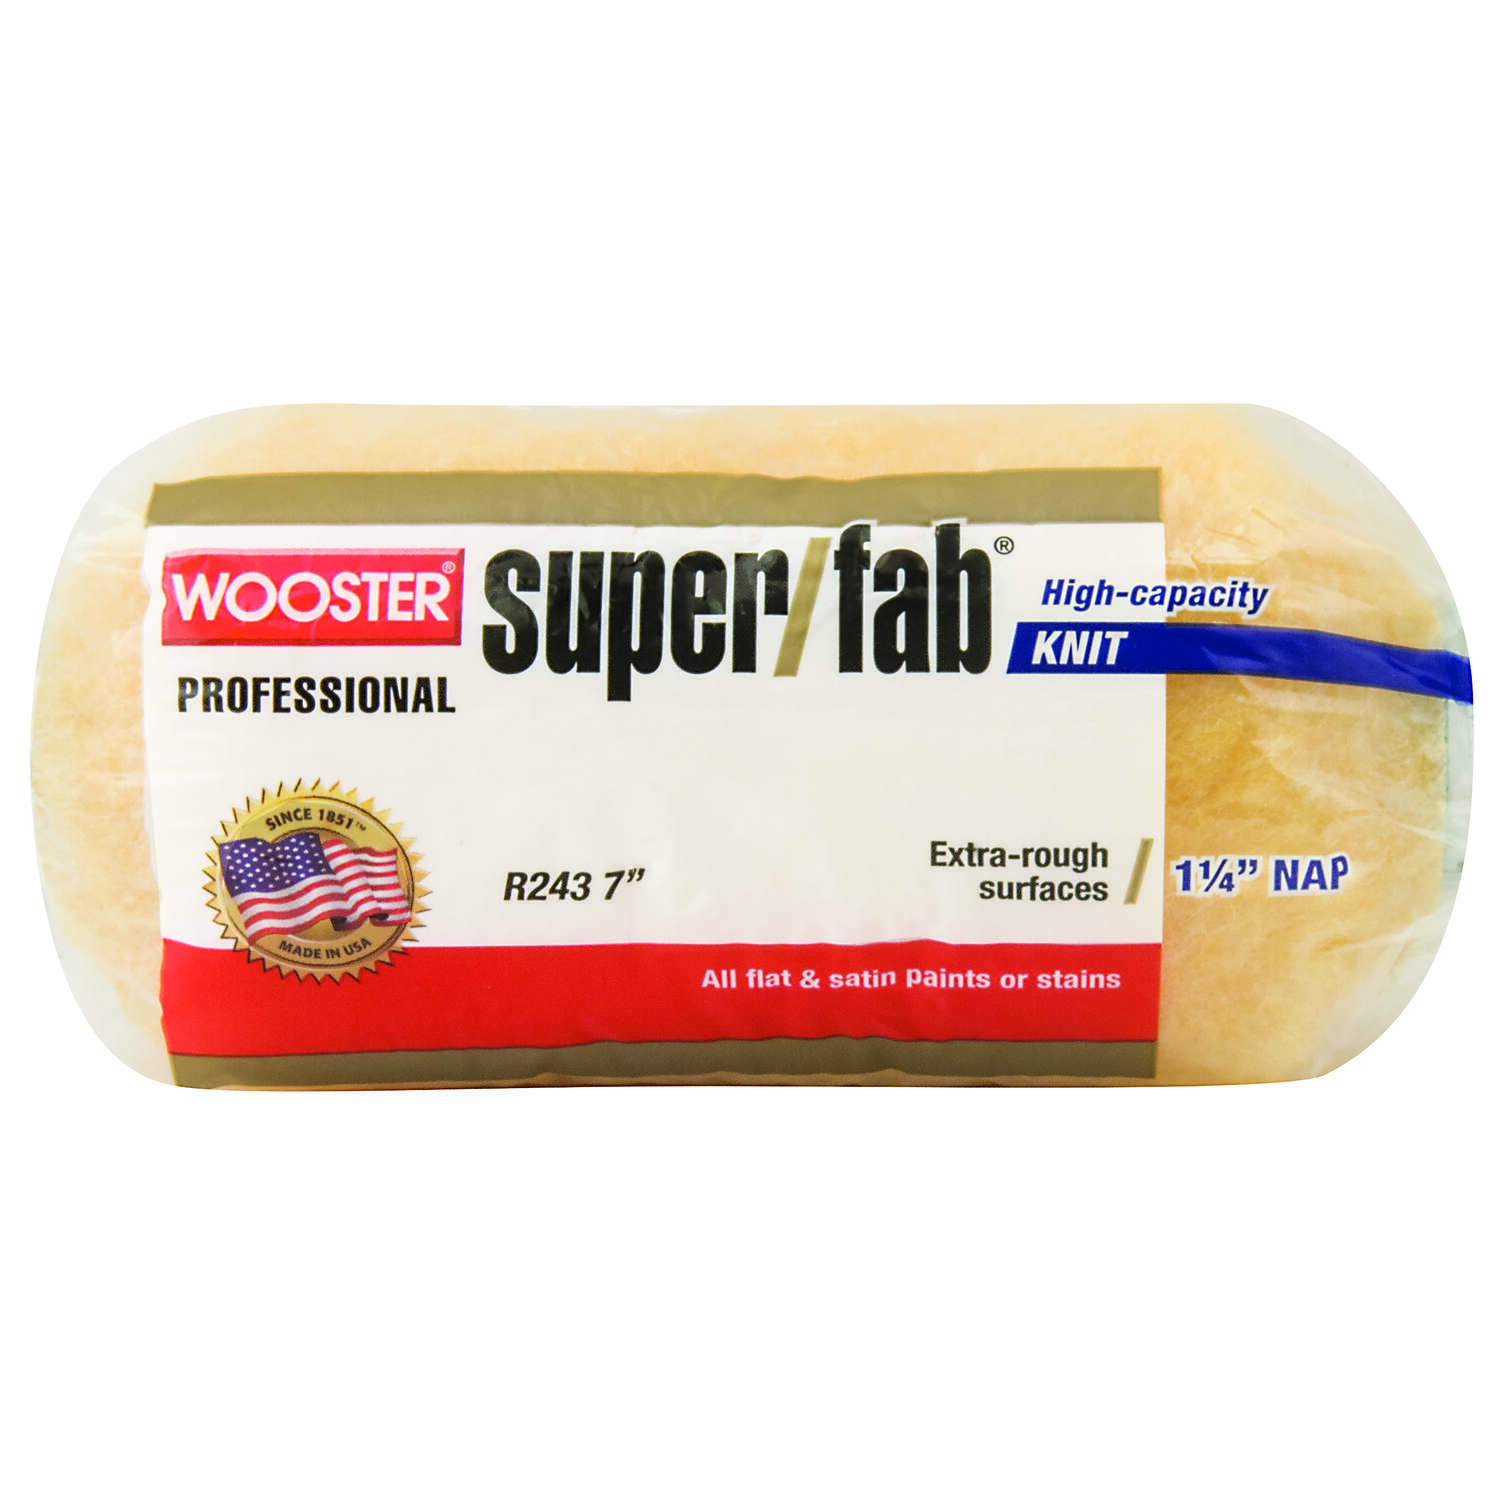 Wooster  Super/Fab  Knit  1-1/4 in.  x 7 in. W Regular  Paint Roller Cover  1 pk